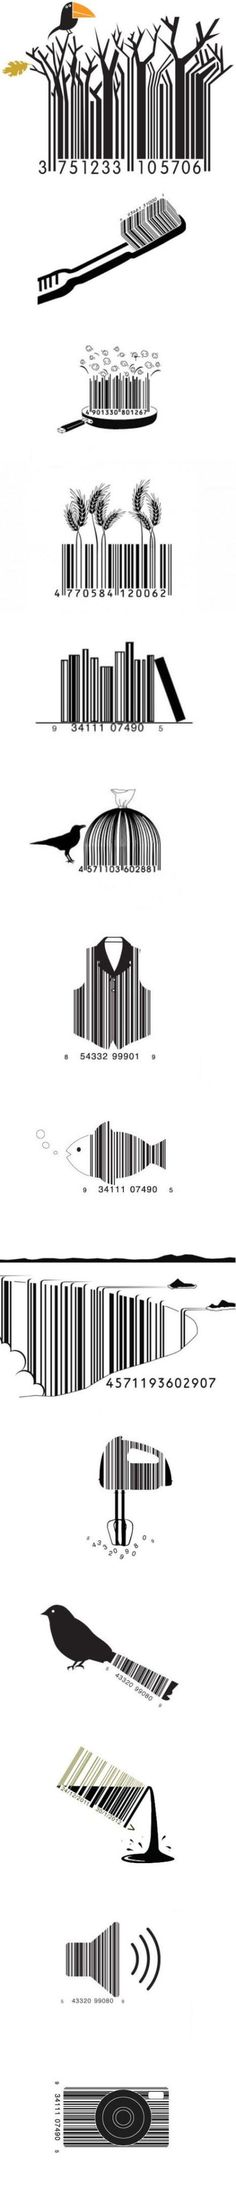 jaman uts literasi? // top 14 design of bar codes